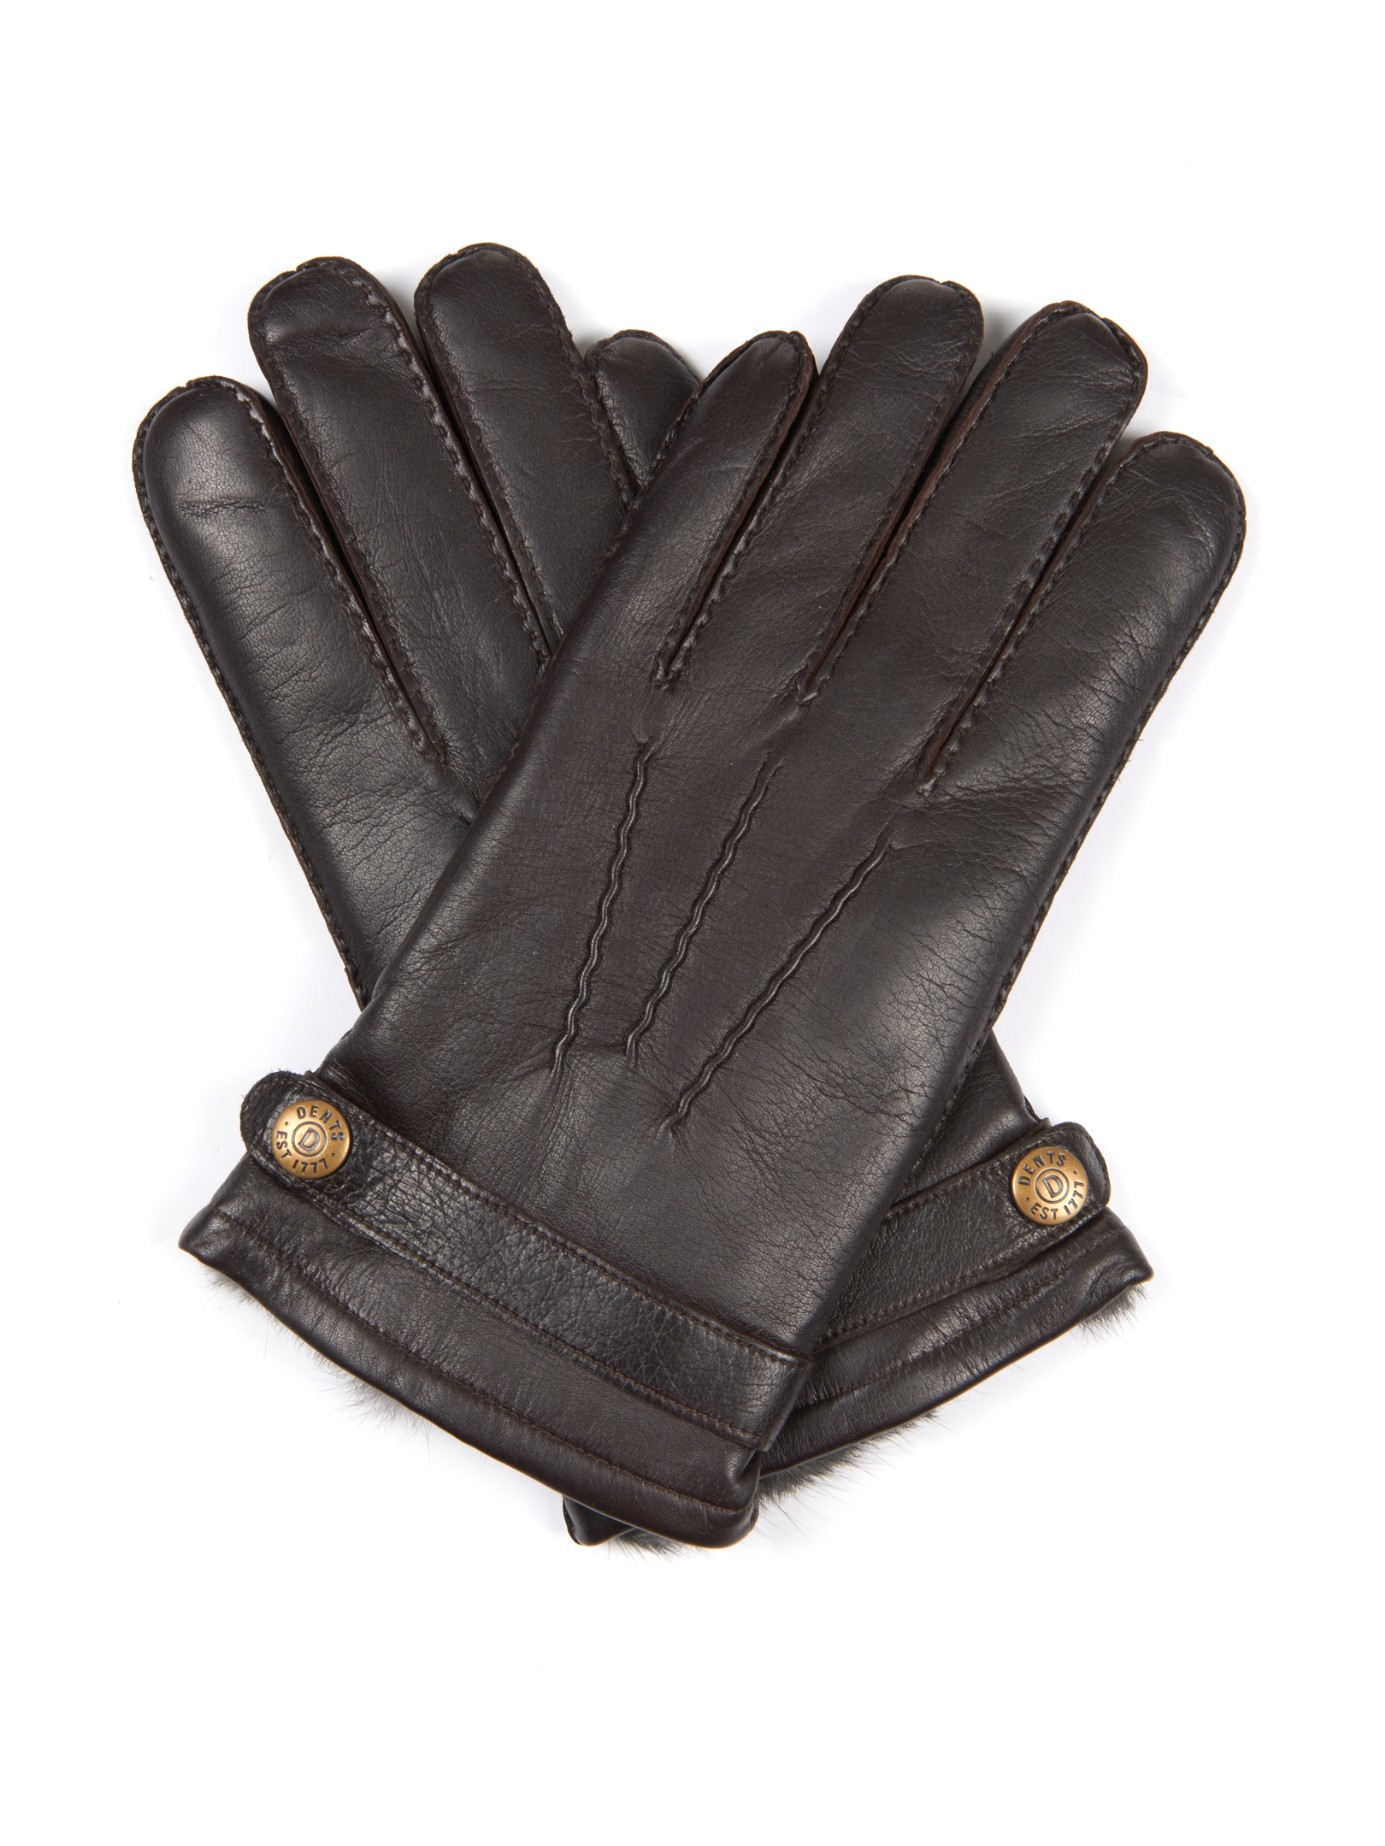 Mens leather gloves dents -